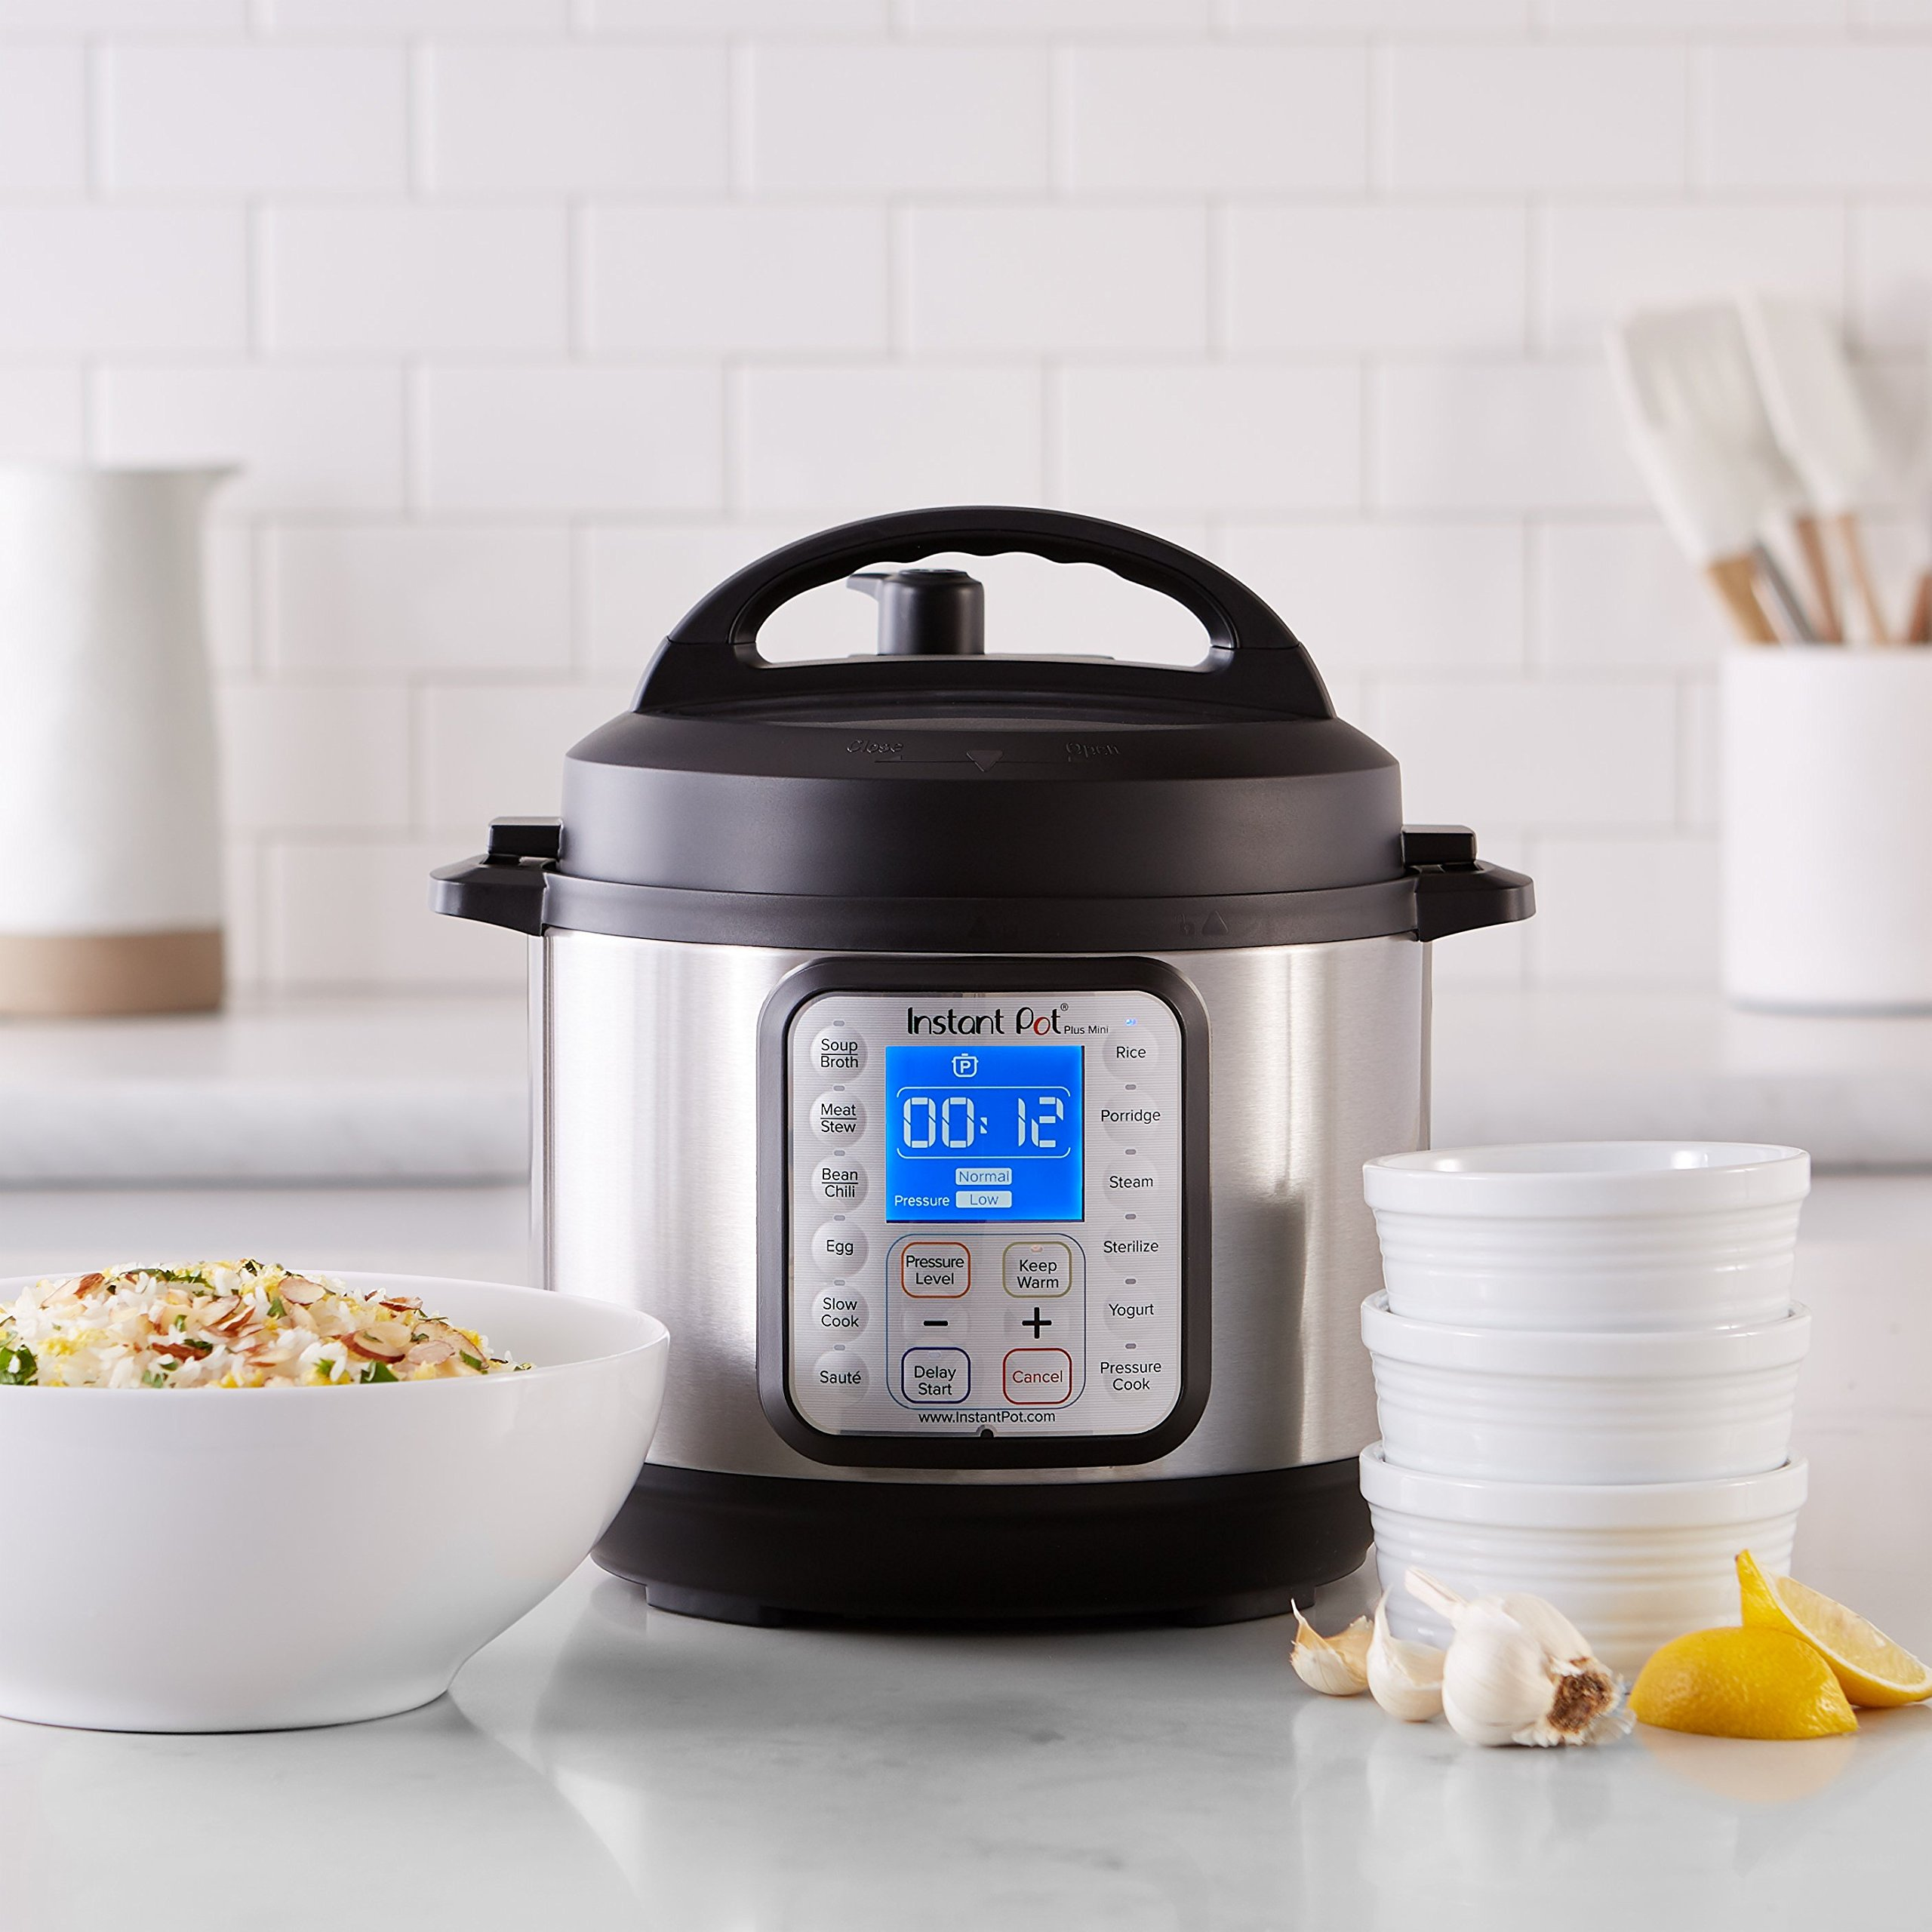 Instant Pot DUO Plus 3 Qt 9-in-1 Multi- Use Programmable Pressure Cooker, Slow Cooker, Rice Cooker, Yogurt Maker, Egg Cooker, Sauté, Steamer, Warmer, and Sterilizer by Instant Pot (Image #2)